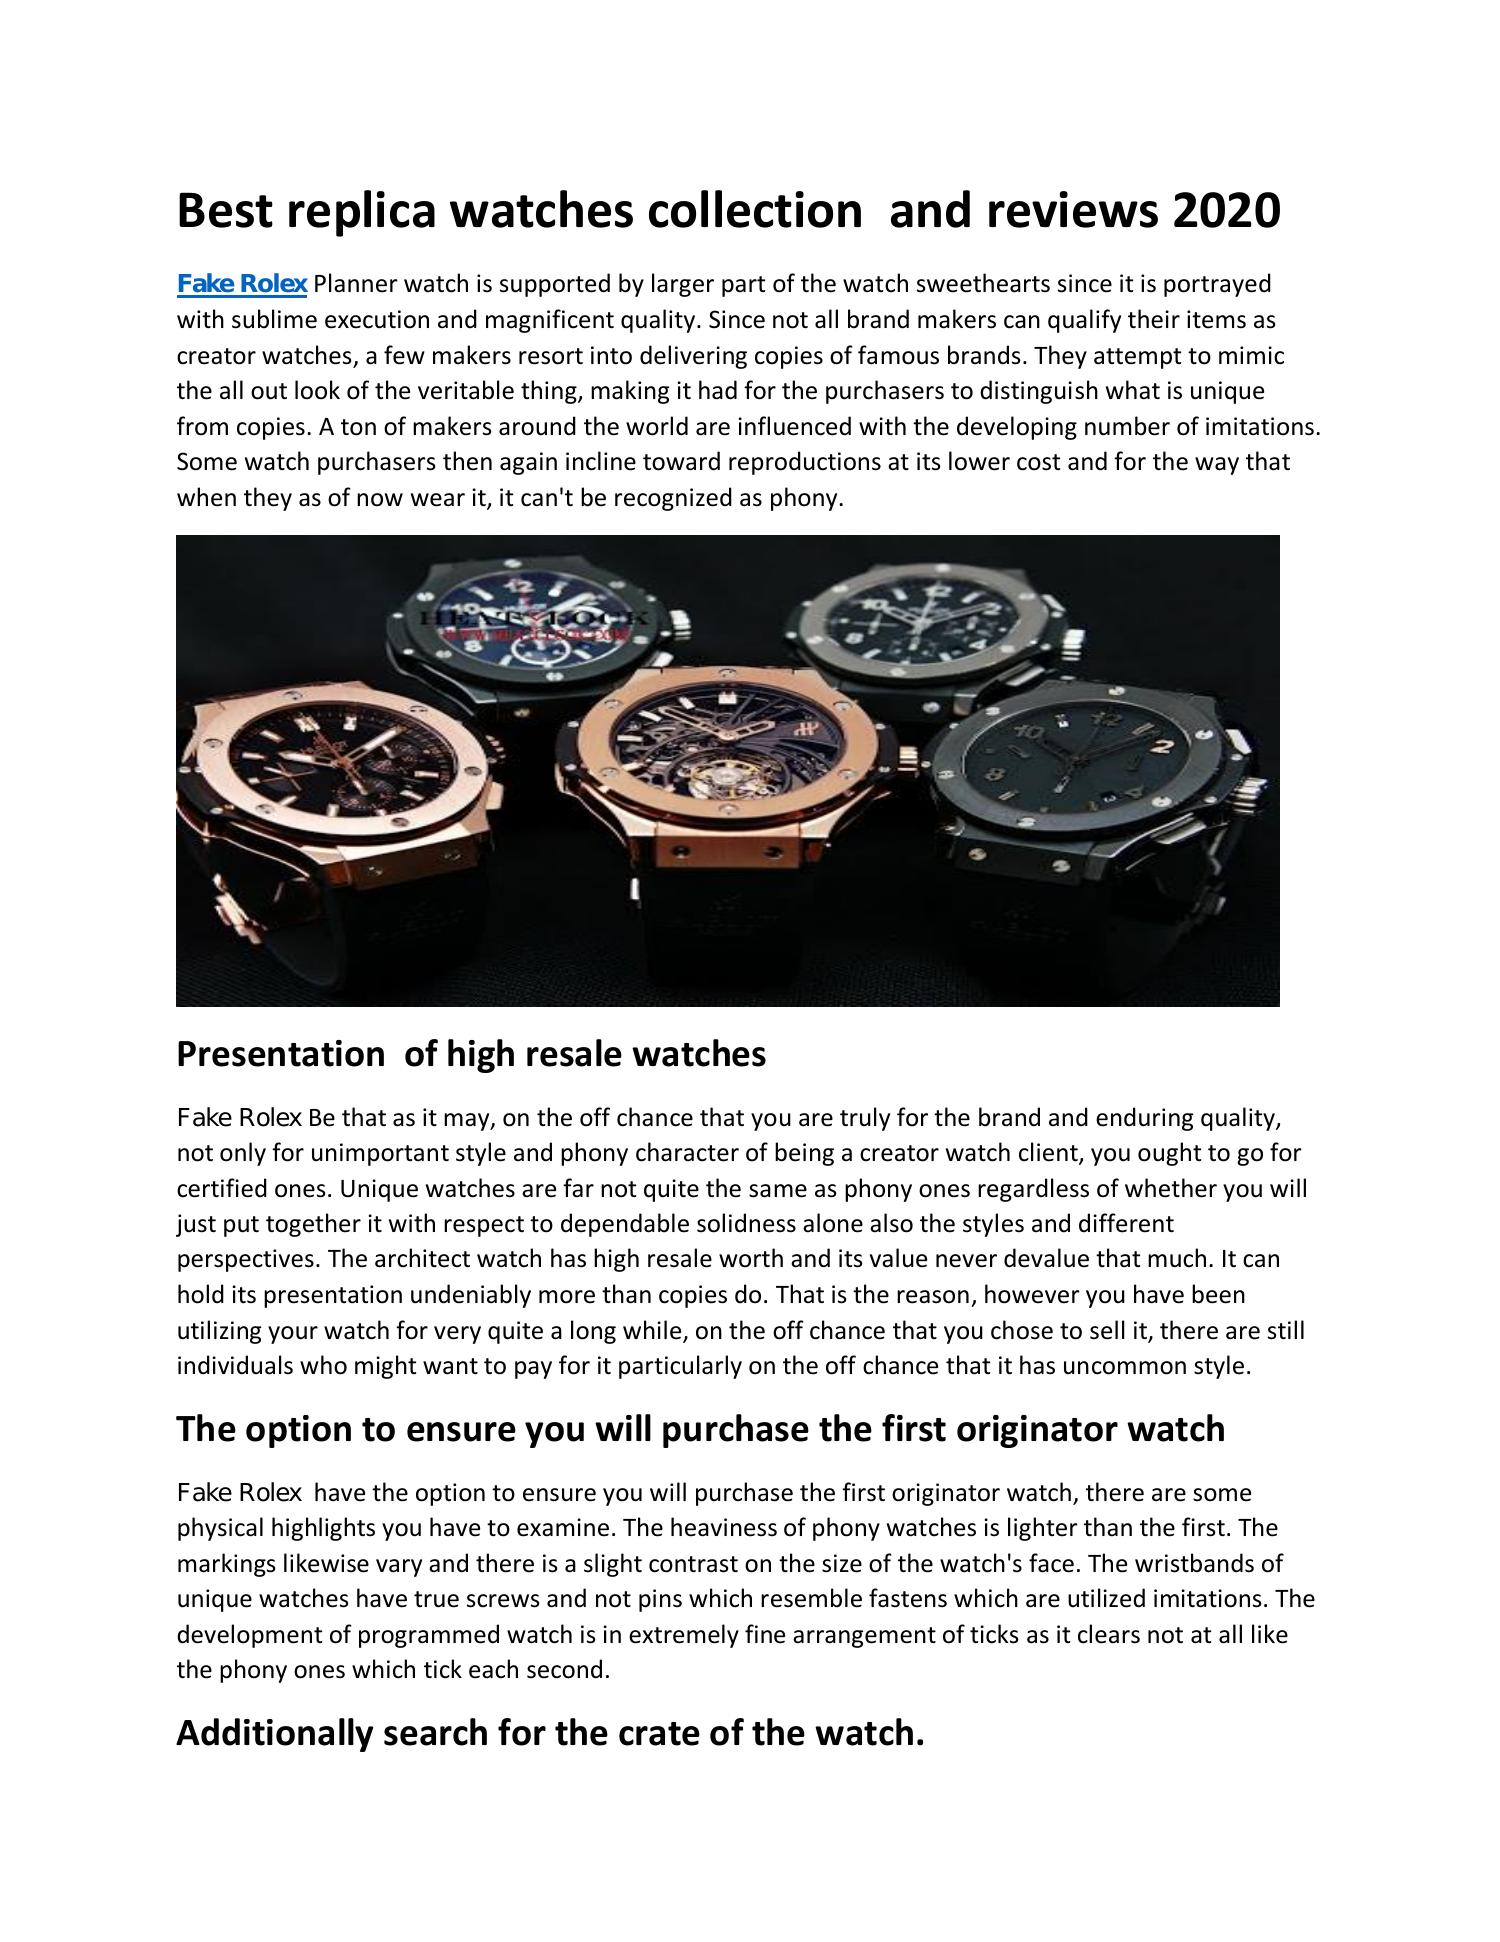 Best Replica Watch Site 2021 Best replica watches collection and reviews 2021.pdf | DocDroid